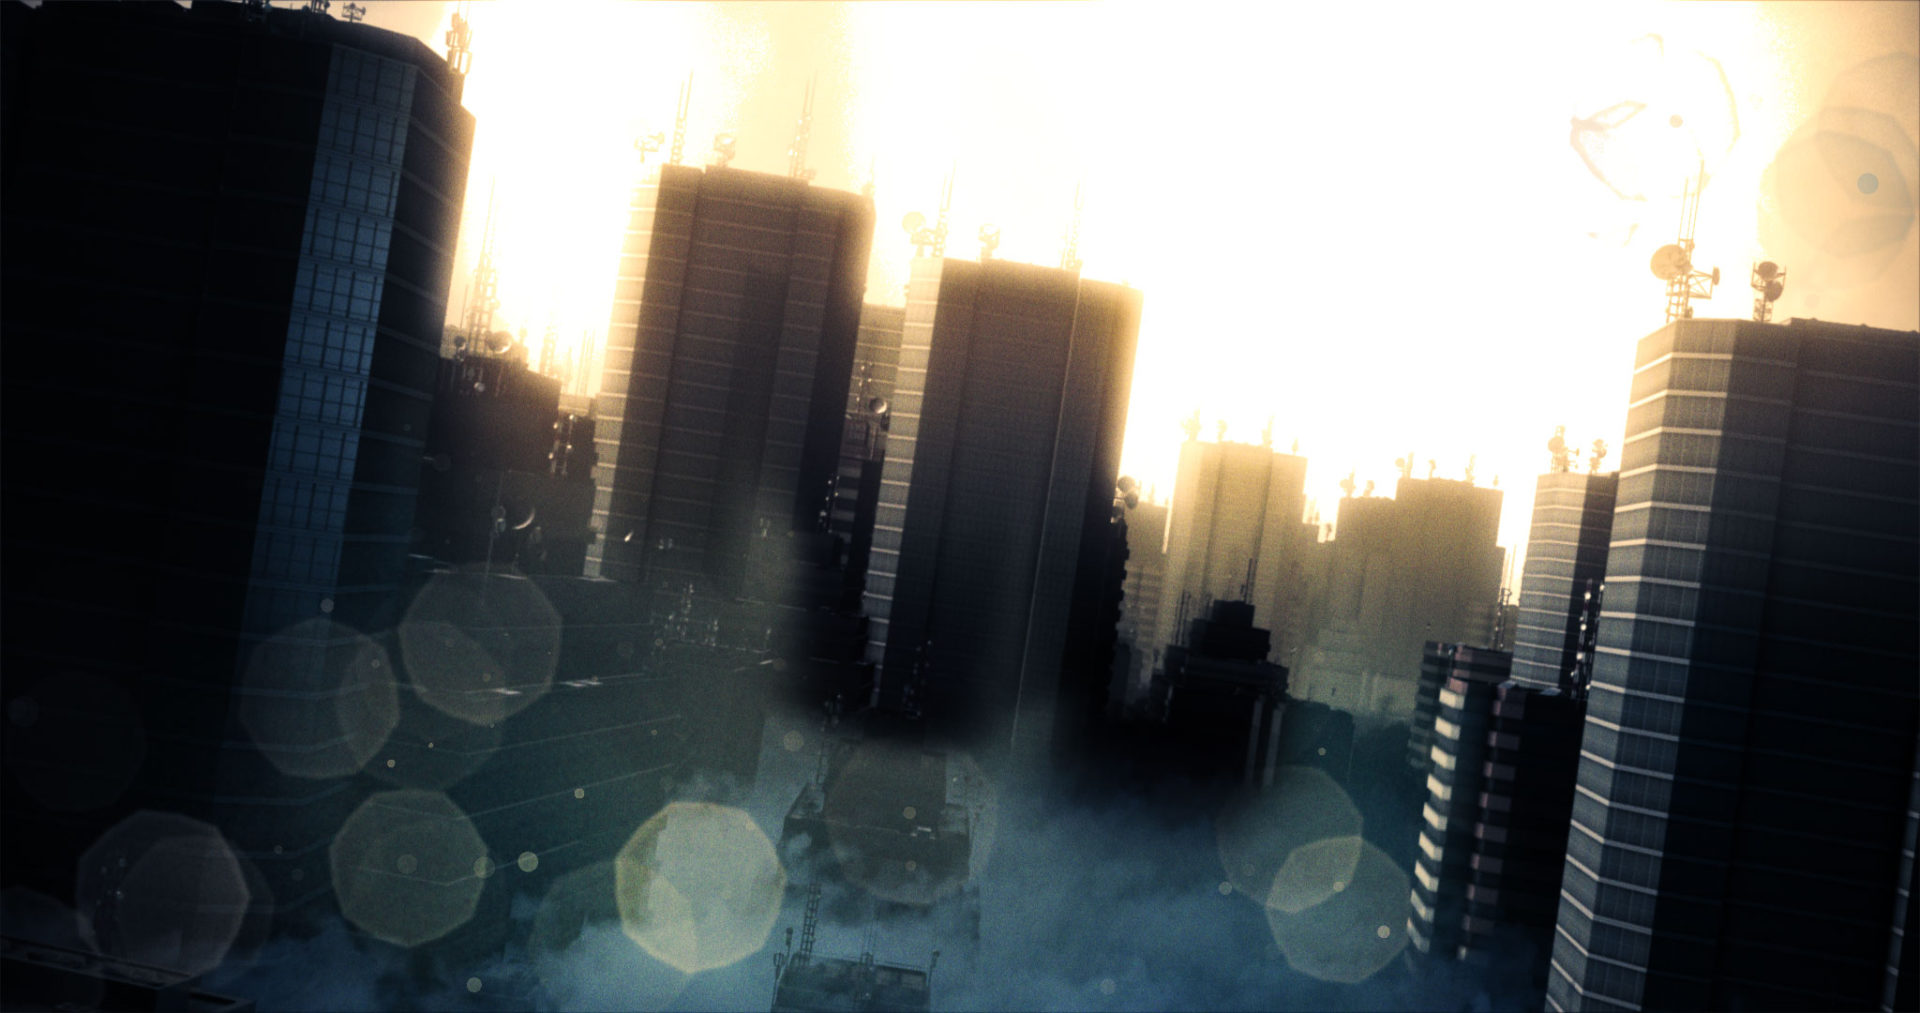 Dust City Particle Generated with Lens Flares